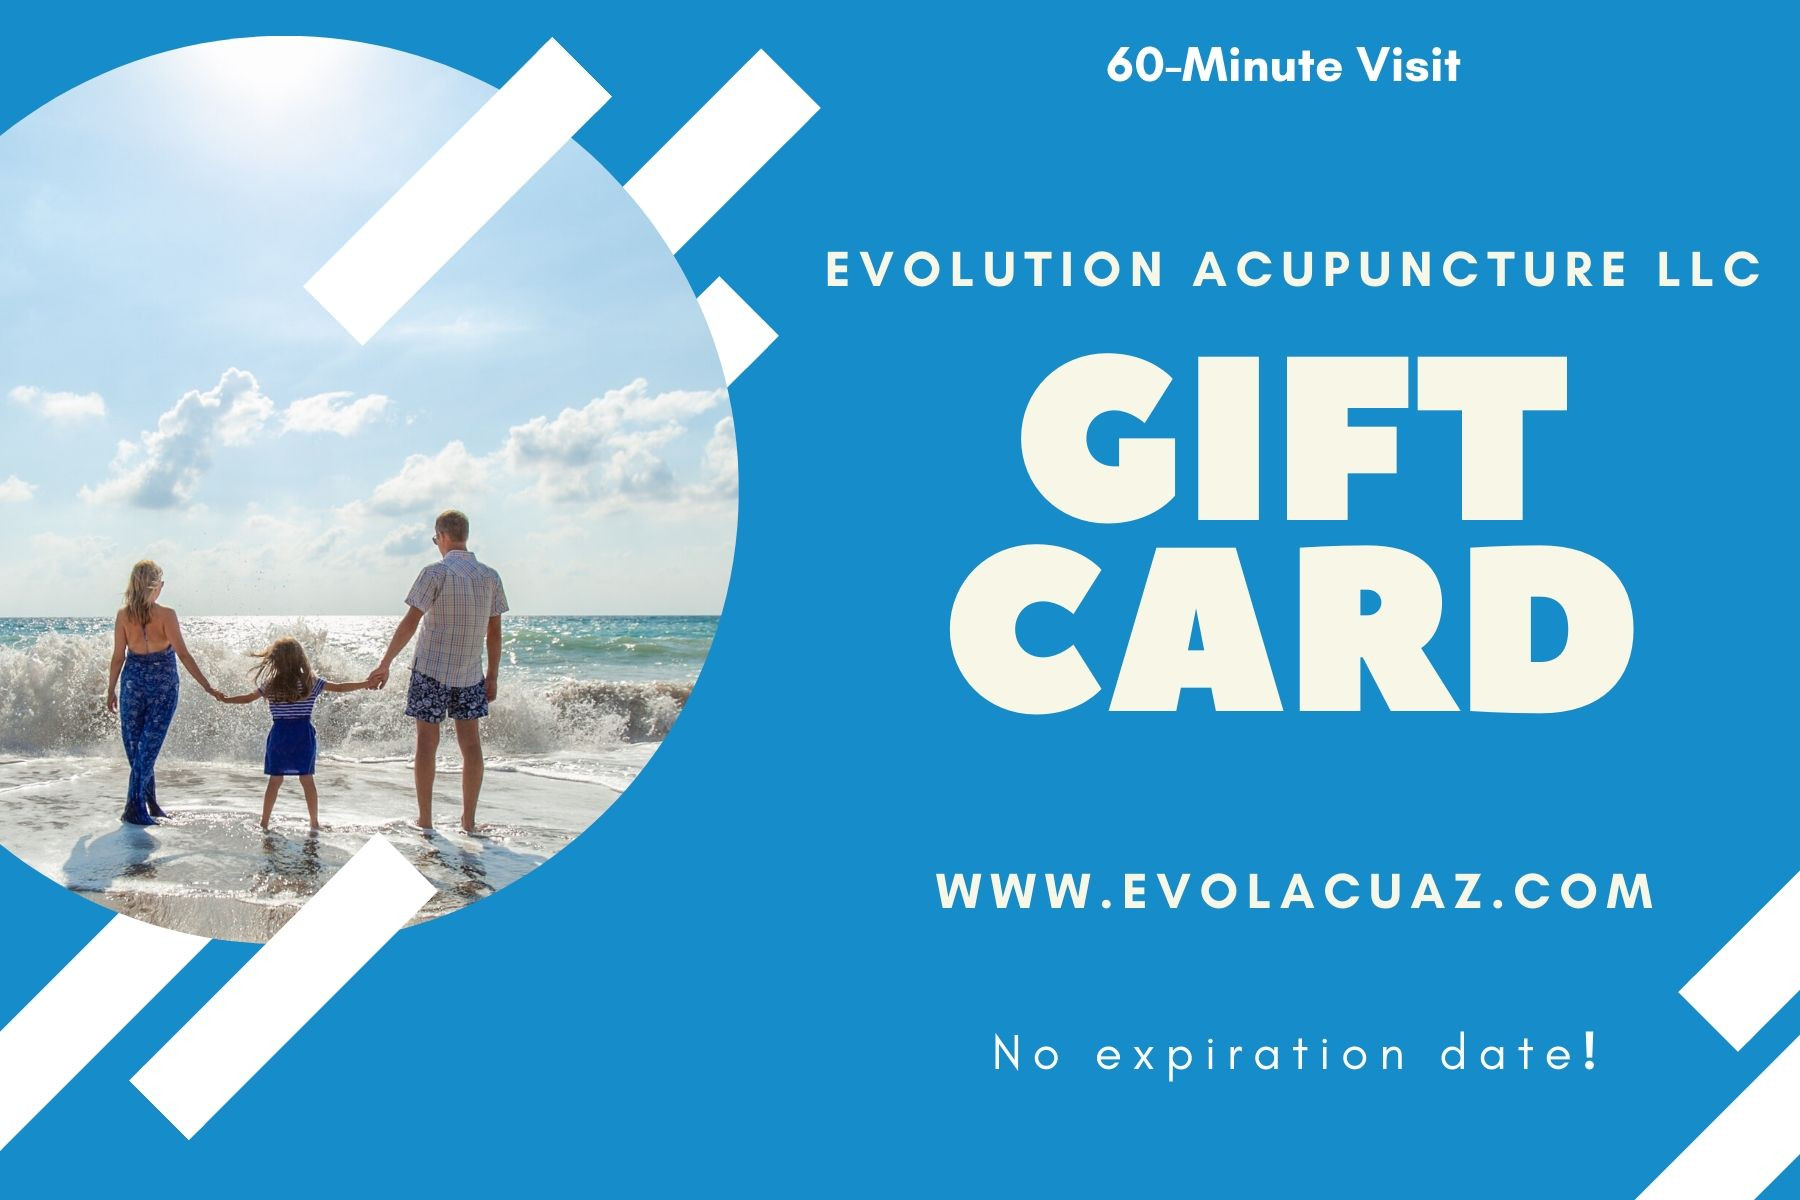 60-Minute Session Gift Card